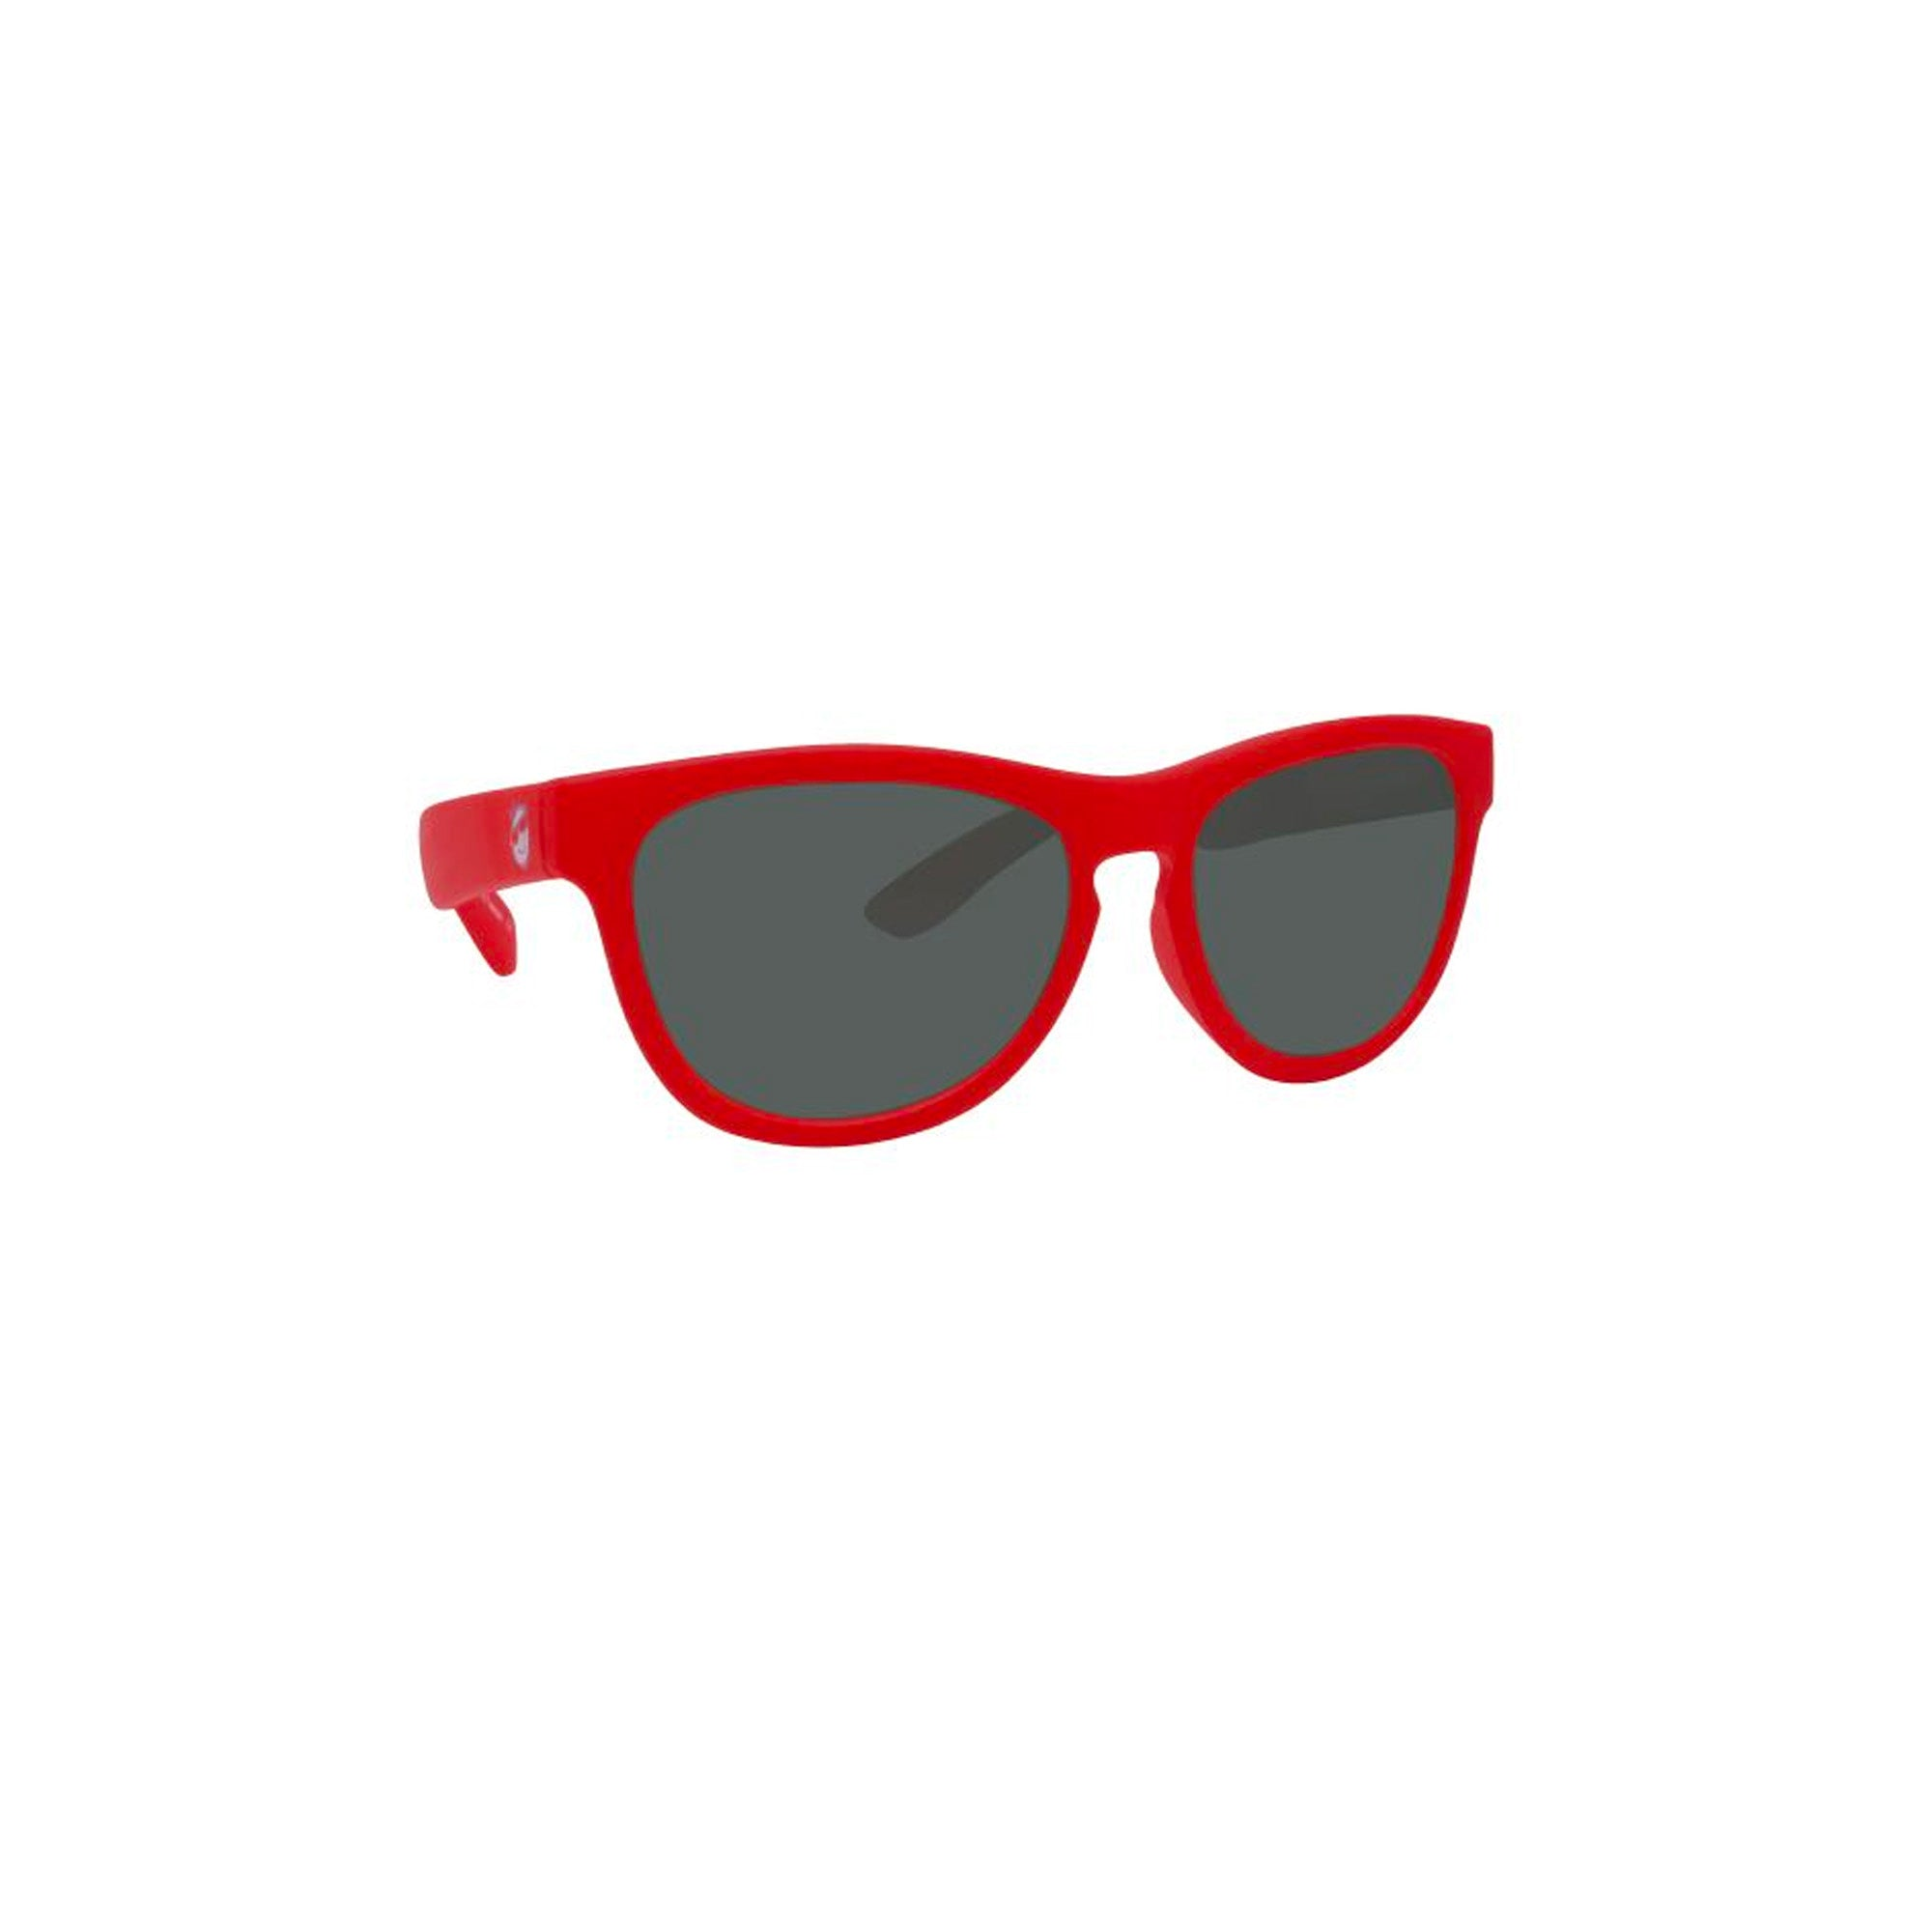 Mini Shades Classic Kid's Polarized Sunglasses (Ages 3-7) - Red Hot